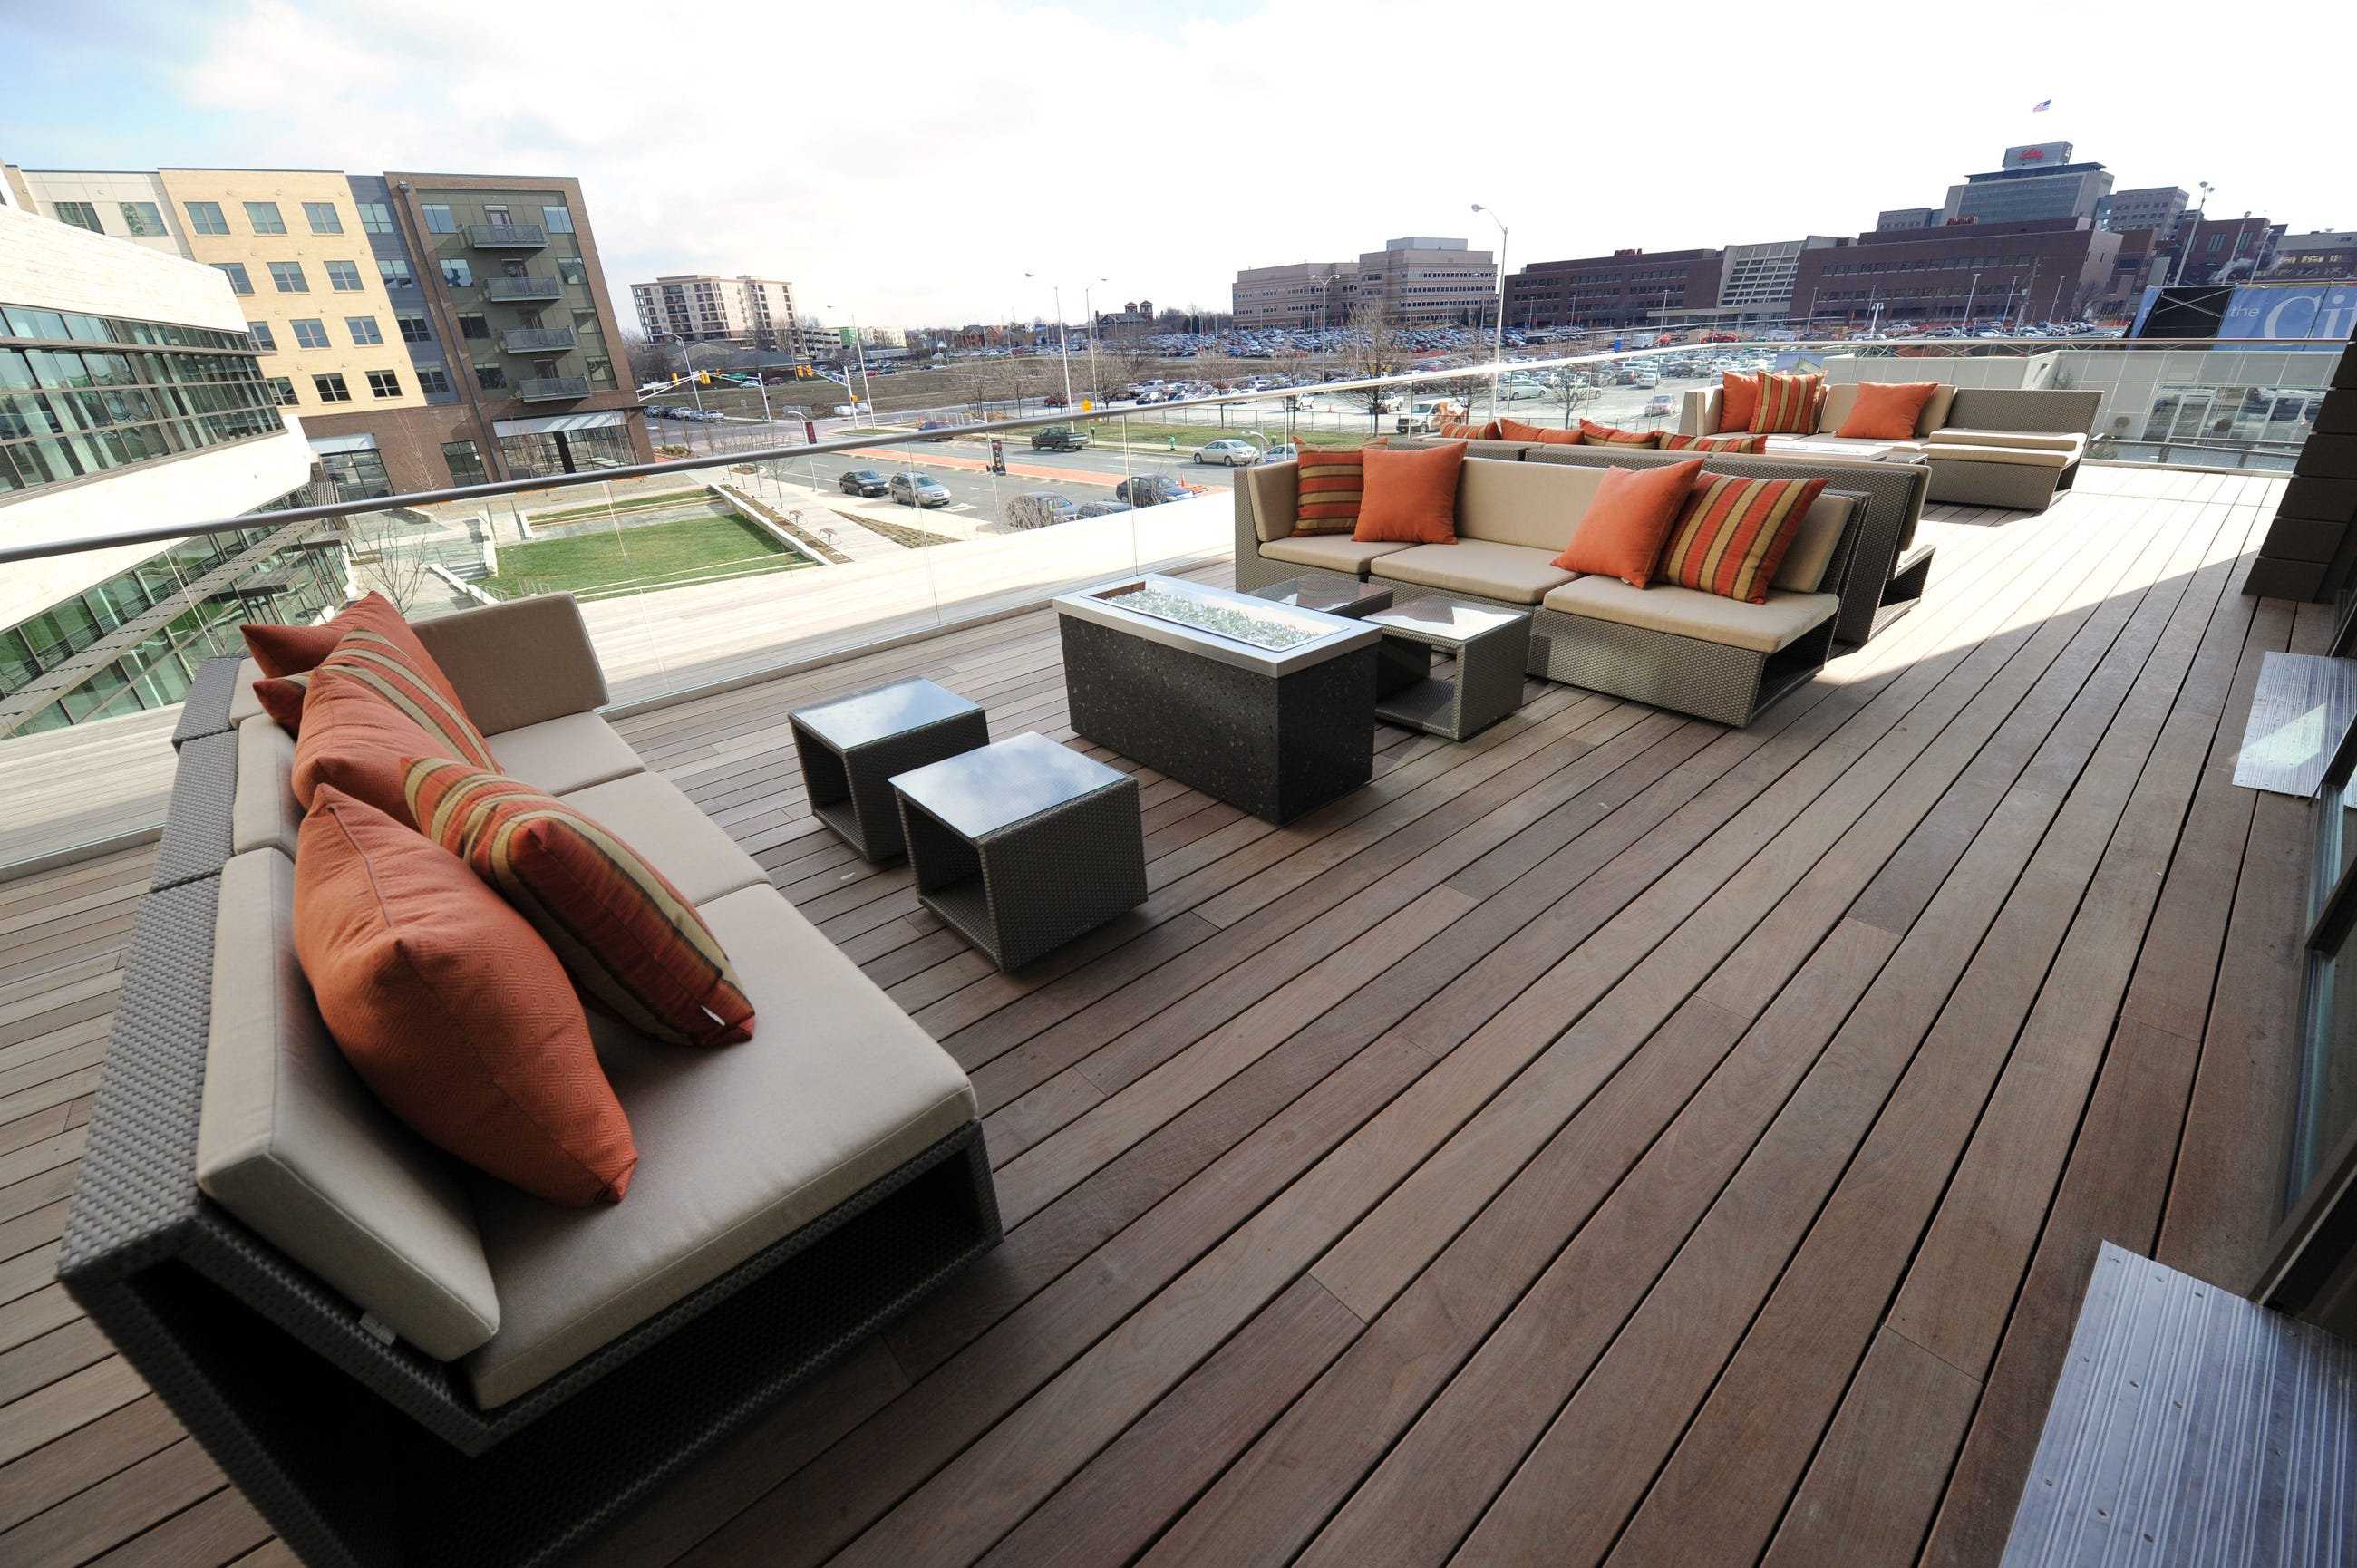 Exceptionnel Plat 99u0027s Wrap Around Patio Has Lovely Views Of Outdoor